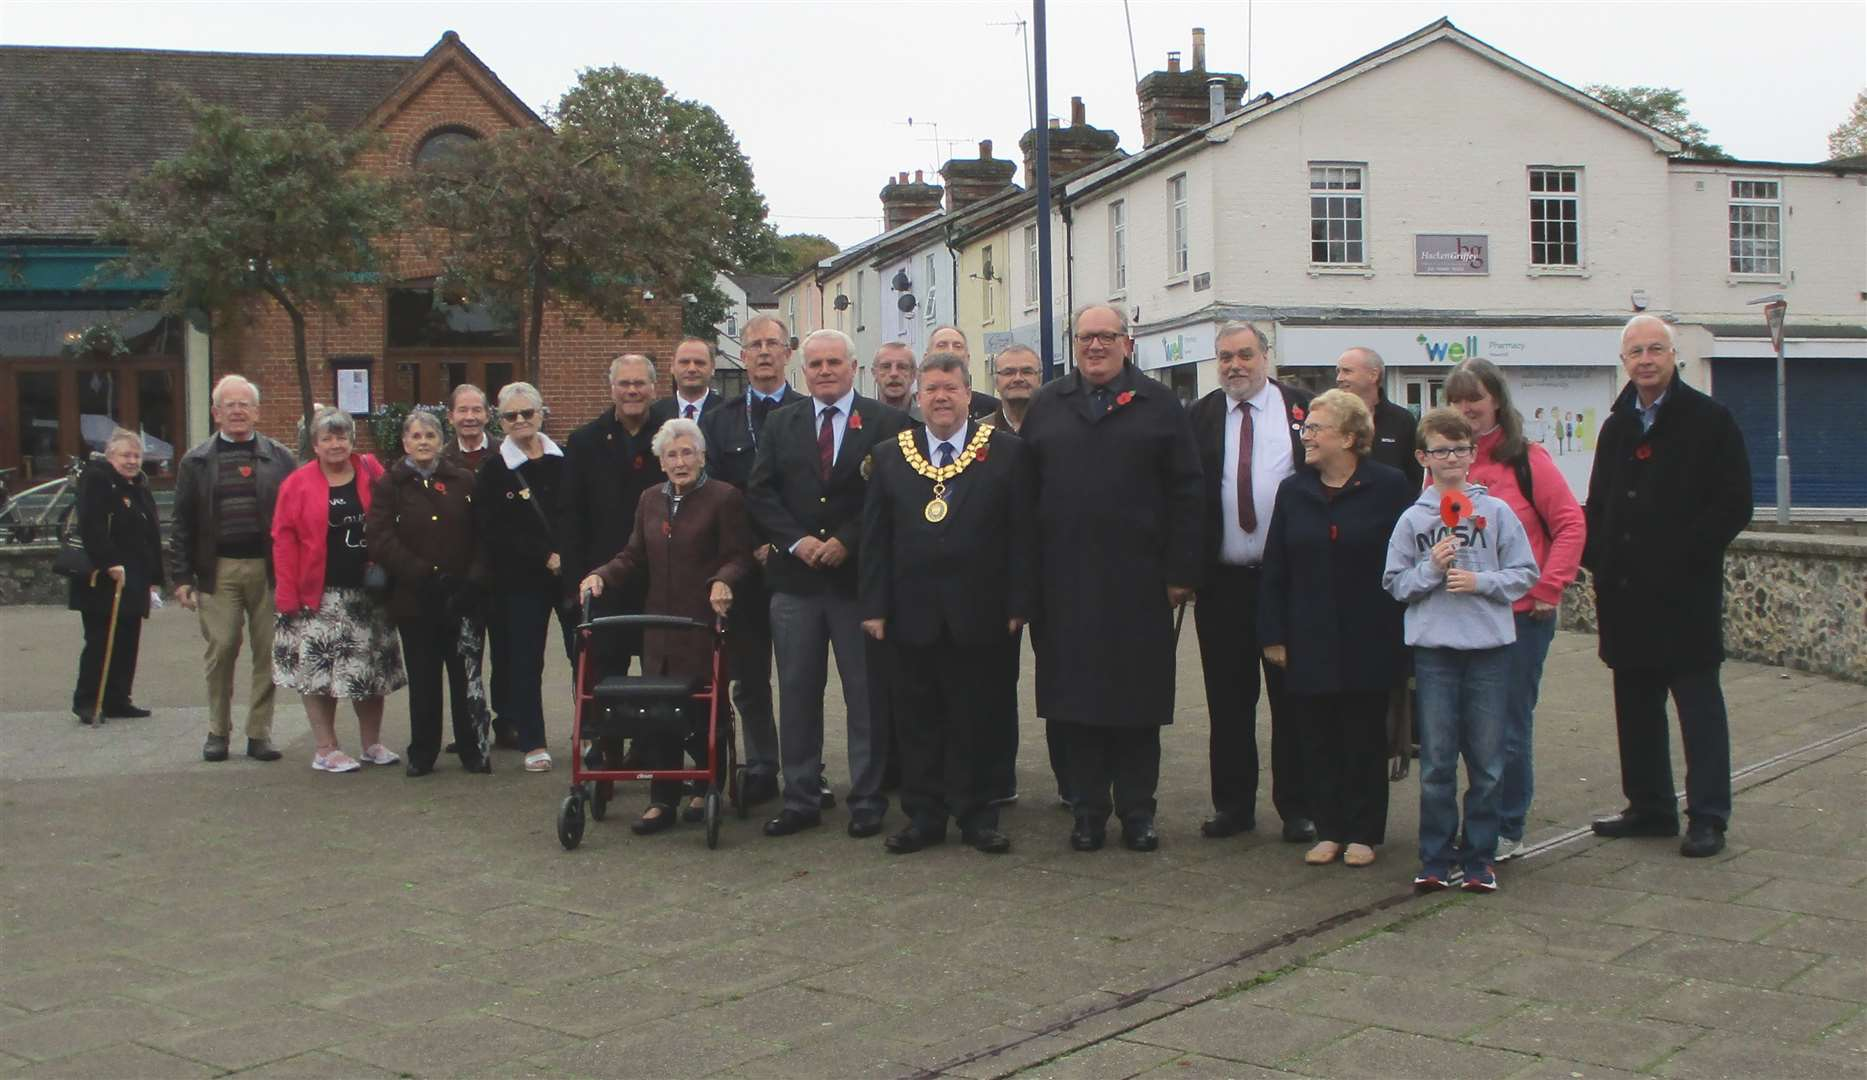 Haverhill RBL members, councillors and other members of the public attended the launch of the 2019 Poppy Appeal. Picture by Geoff Walker